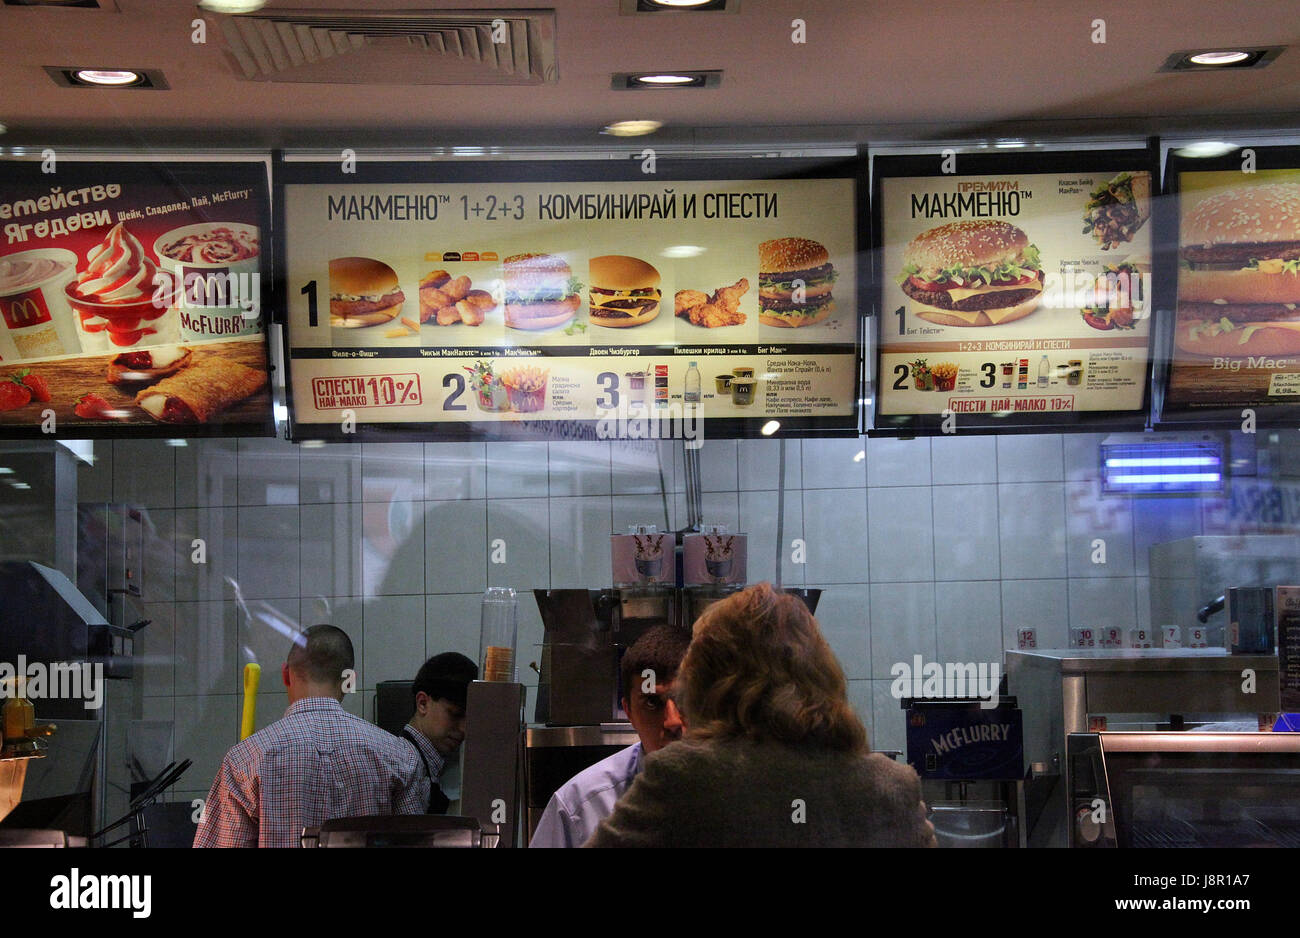 McDonalds Fast Food Outlet in a Sofia Metro Station - Stock Image